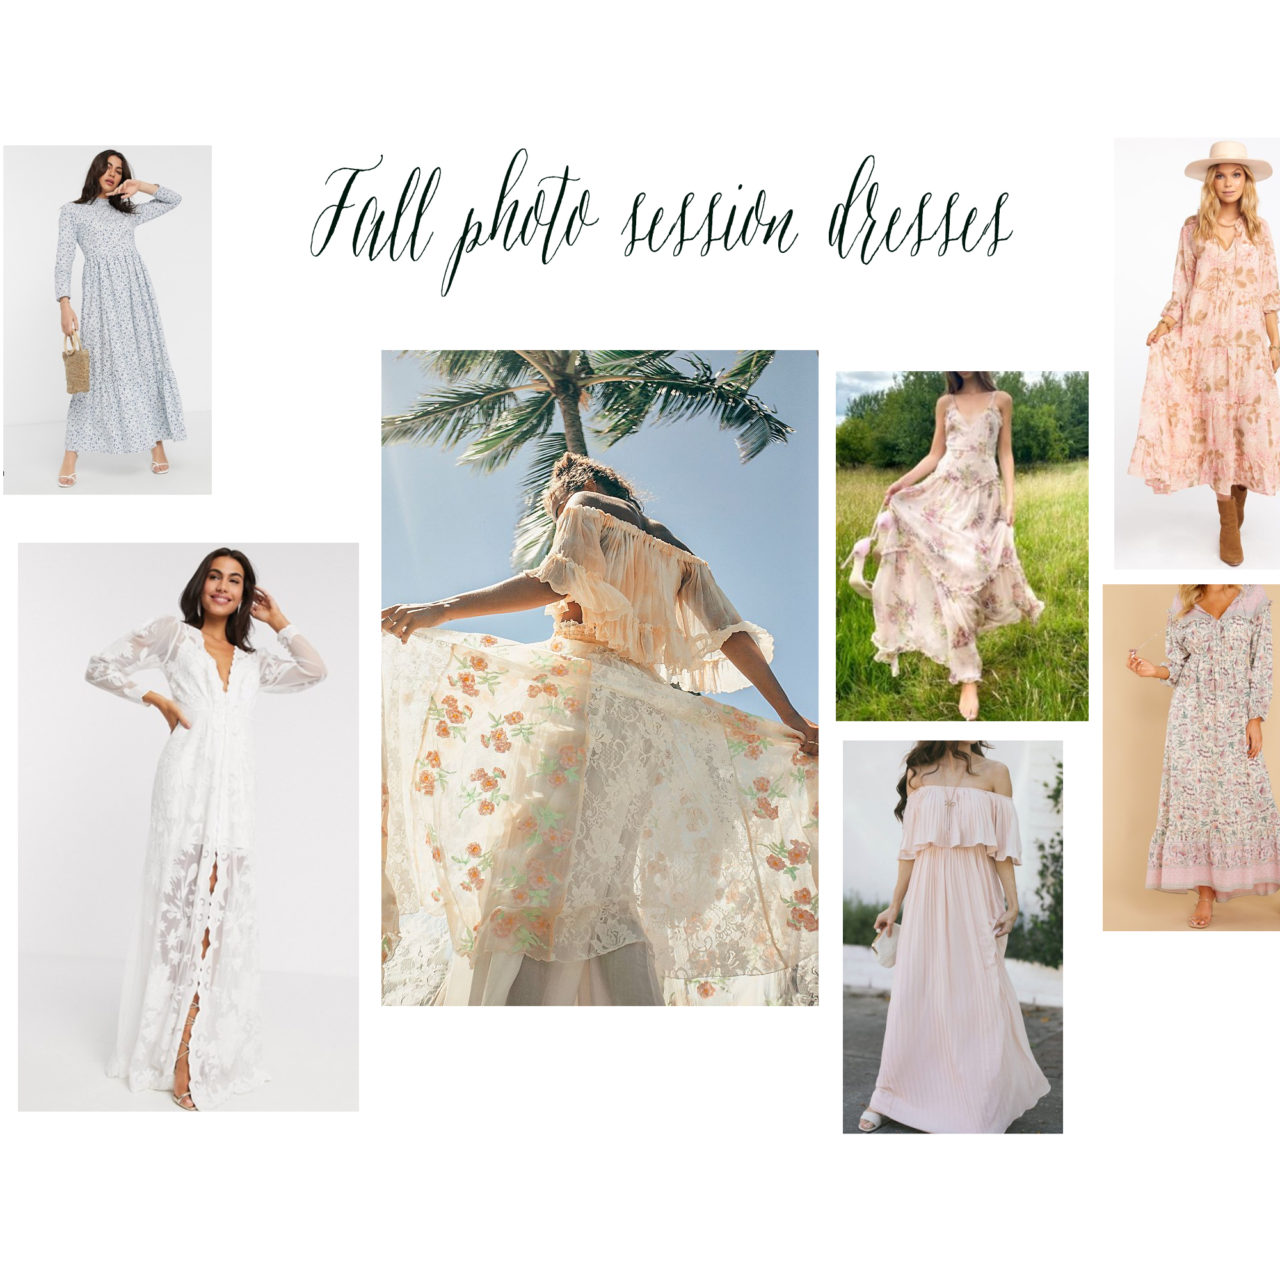 Fall photography session dresses